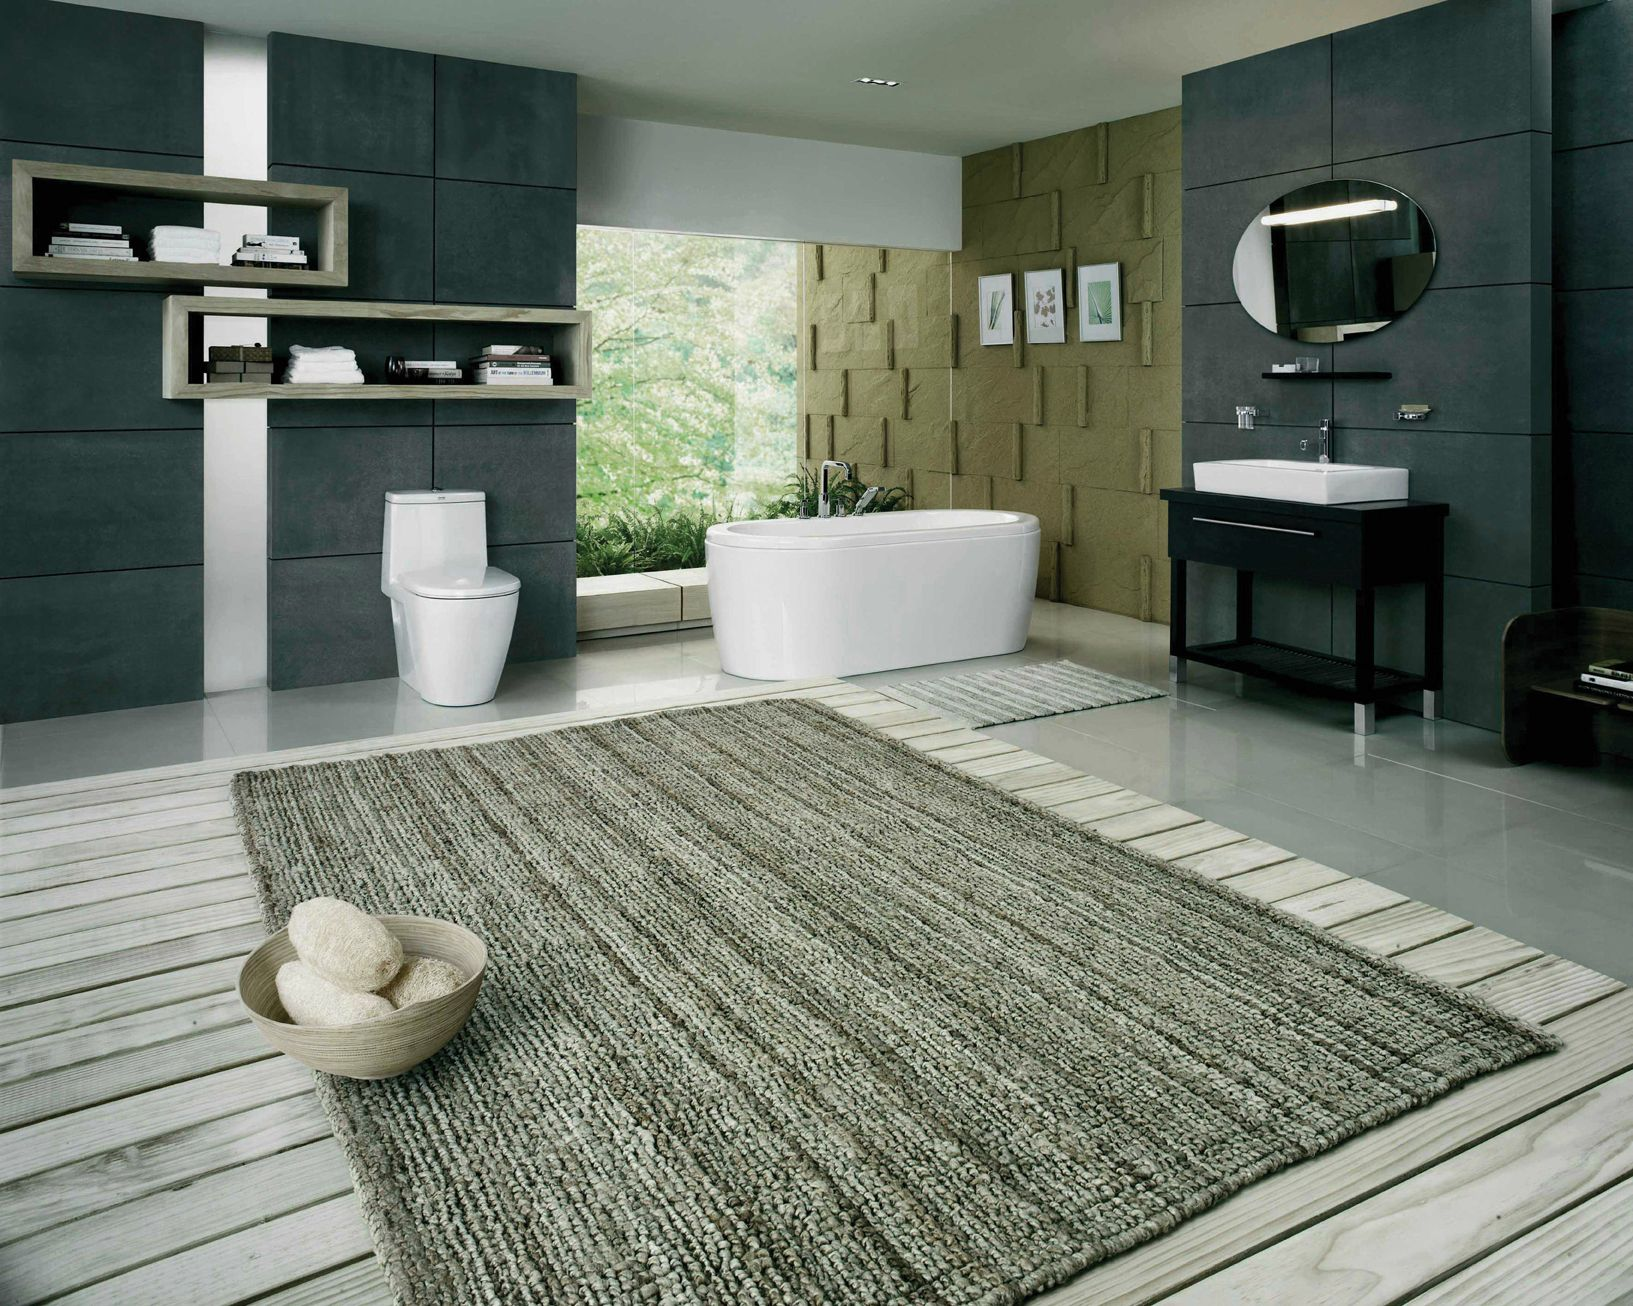 Large bathroom rugs homesfeed for Large bathroom designs pictures